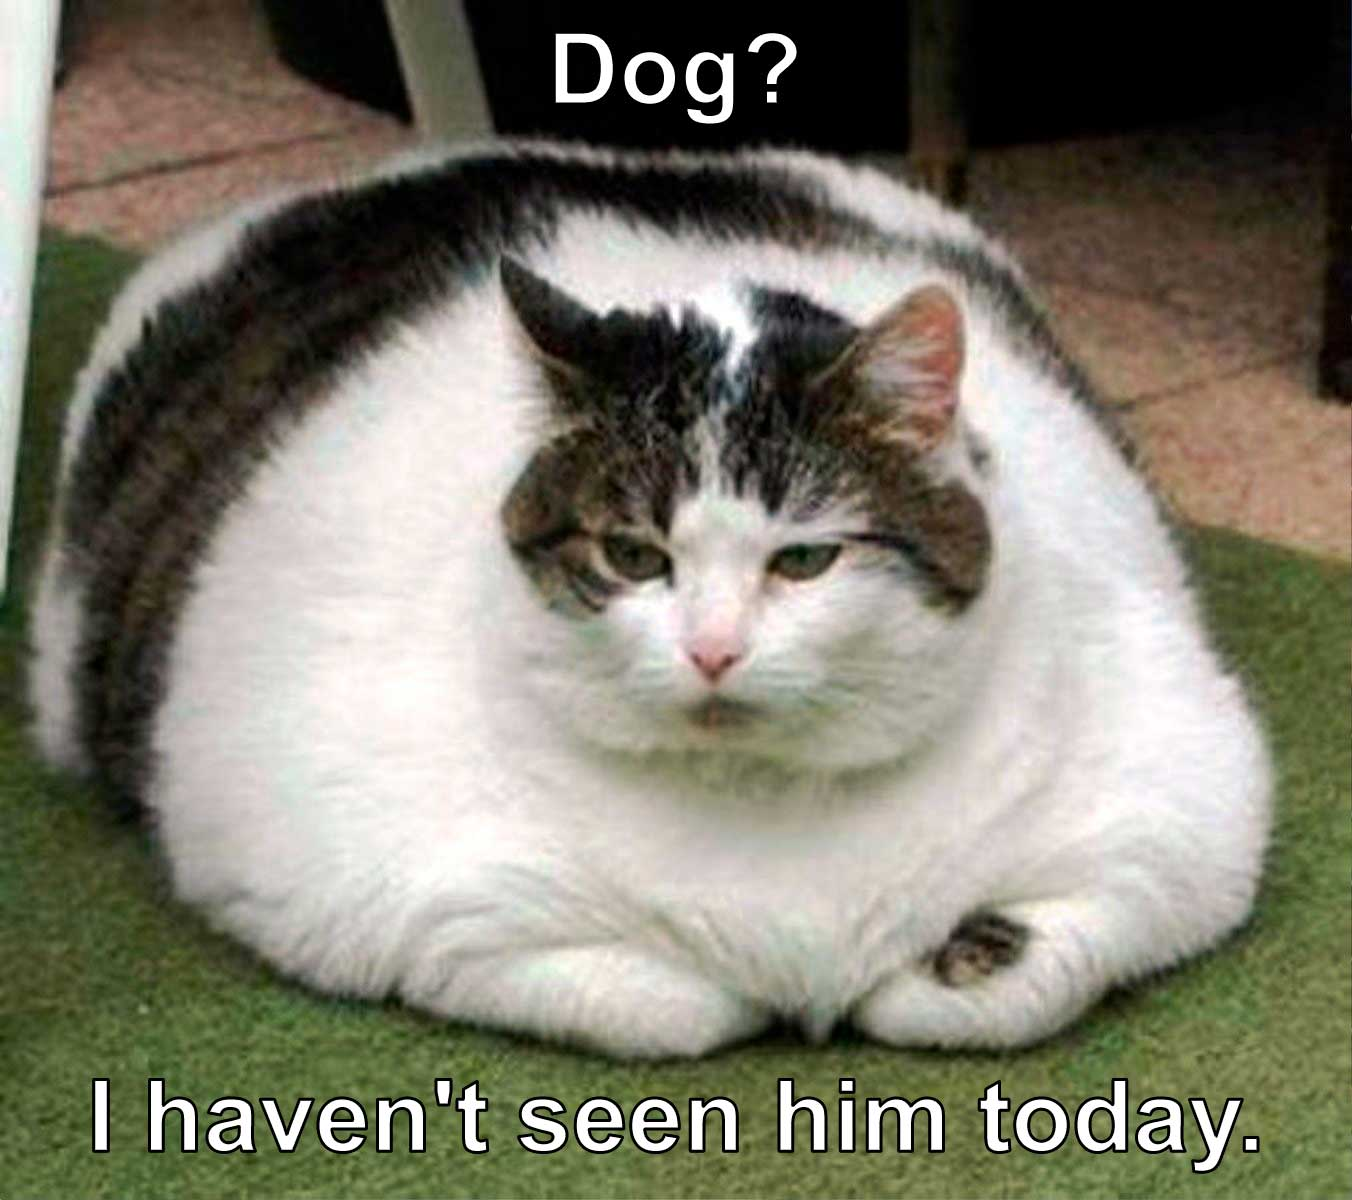 Dog? I haven't seen him today